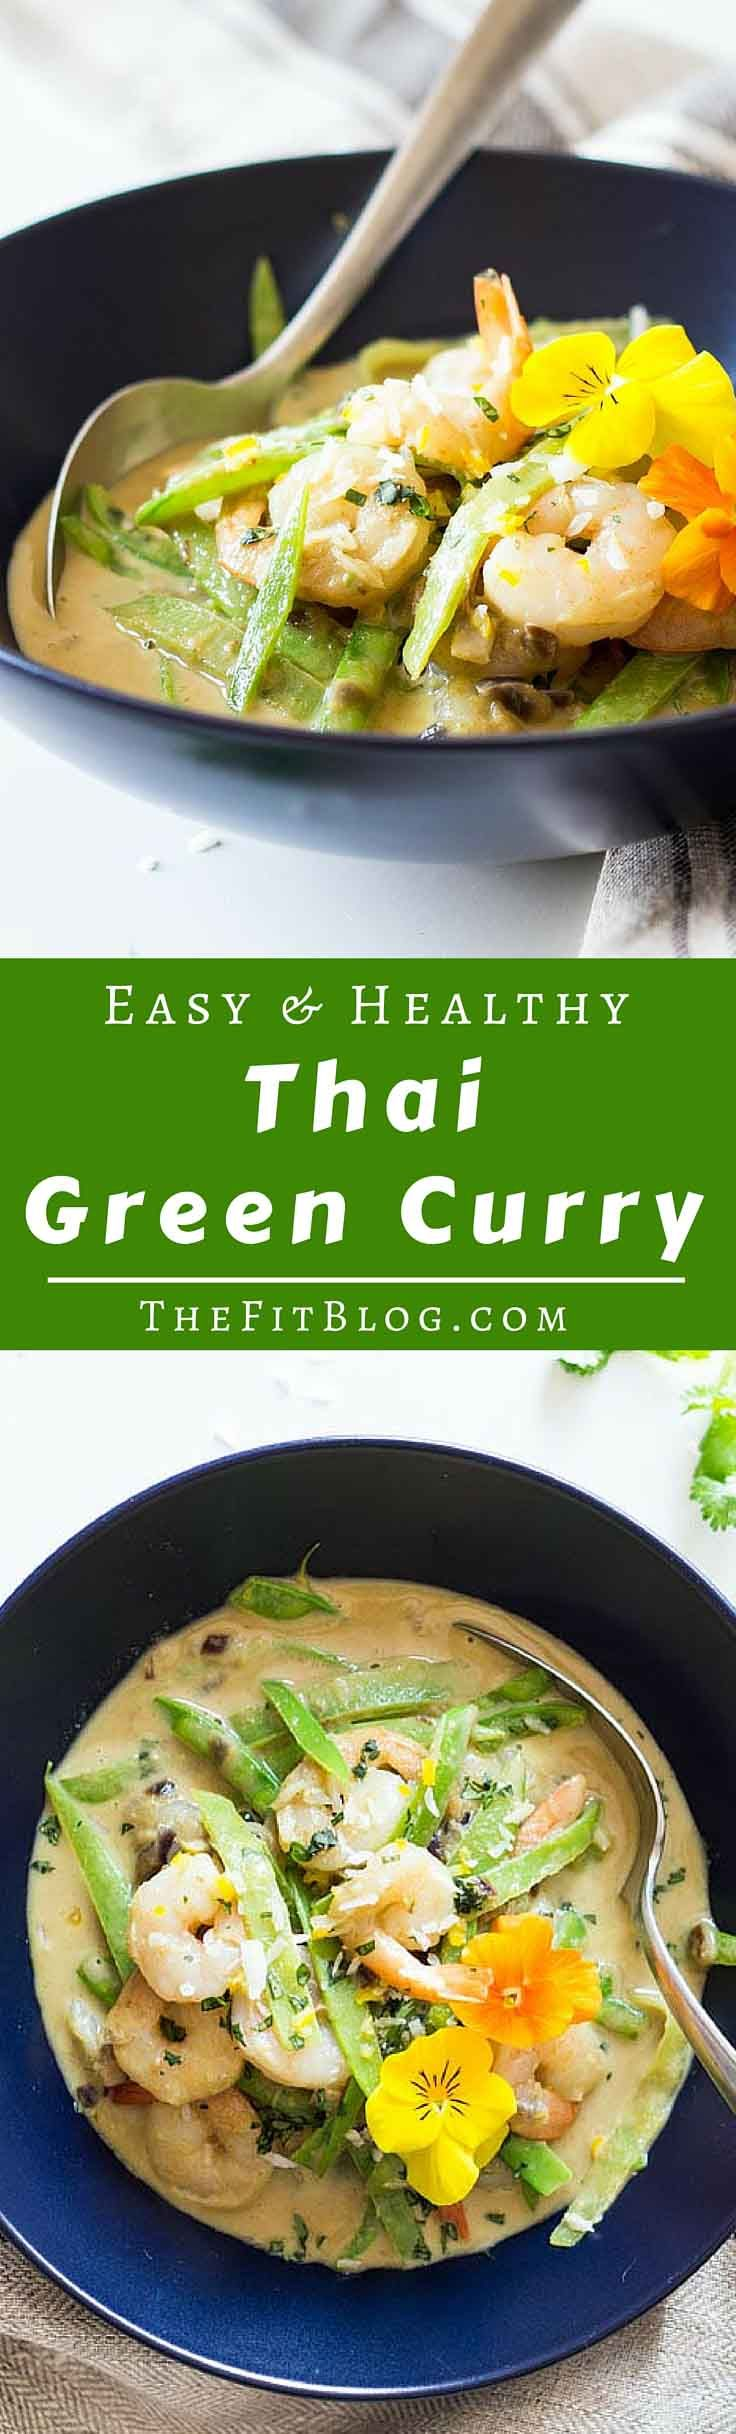 Easy Thai Green Curry With Shrimp | Recipe | Gluten, Curry ...